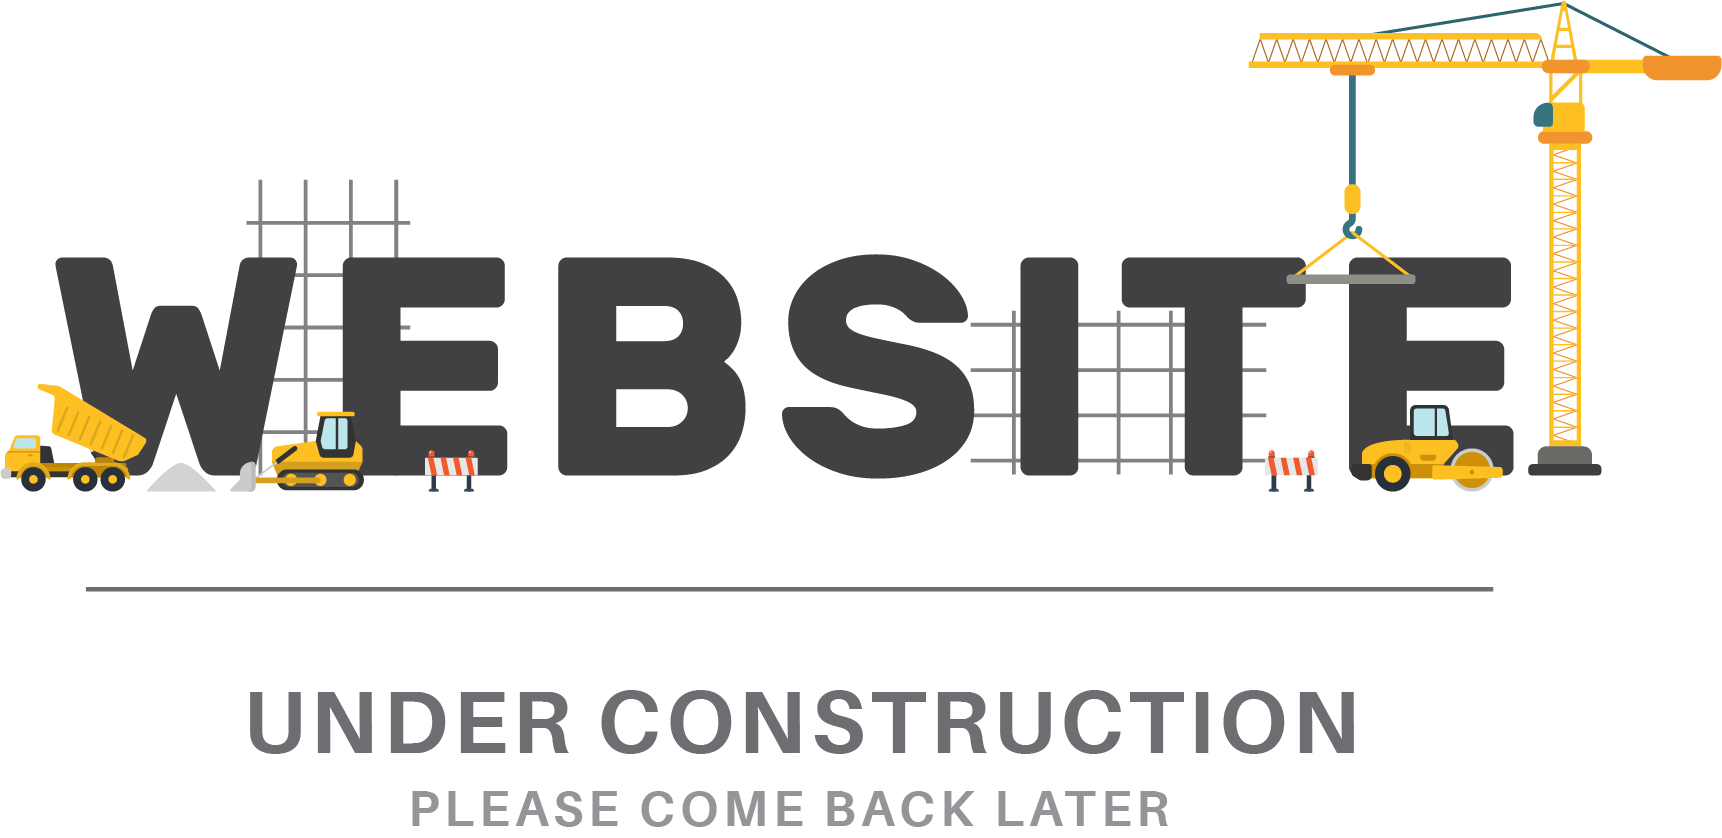 Website under construction. Please come back later.